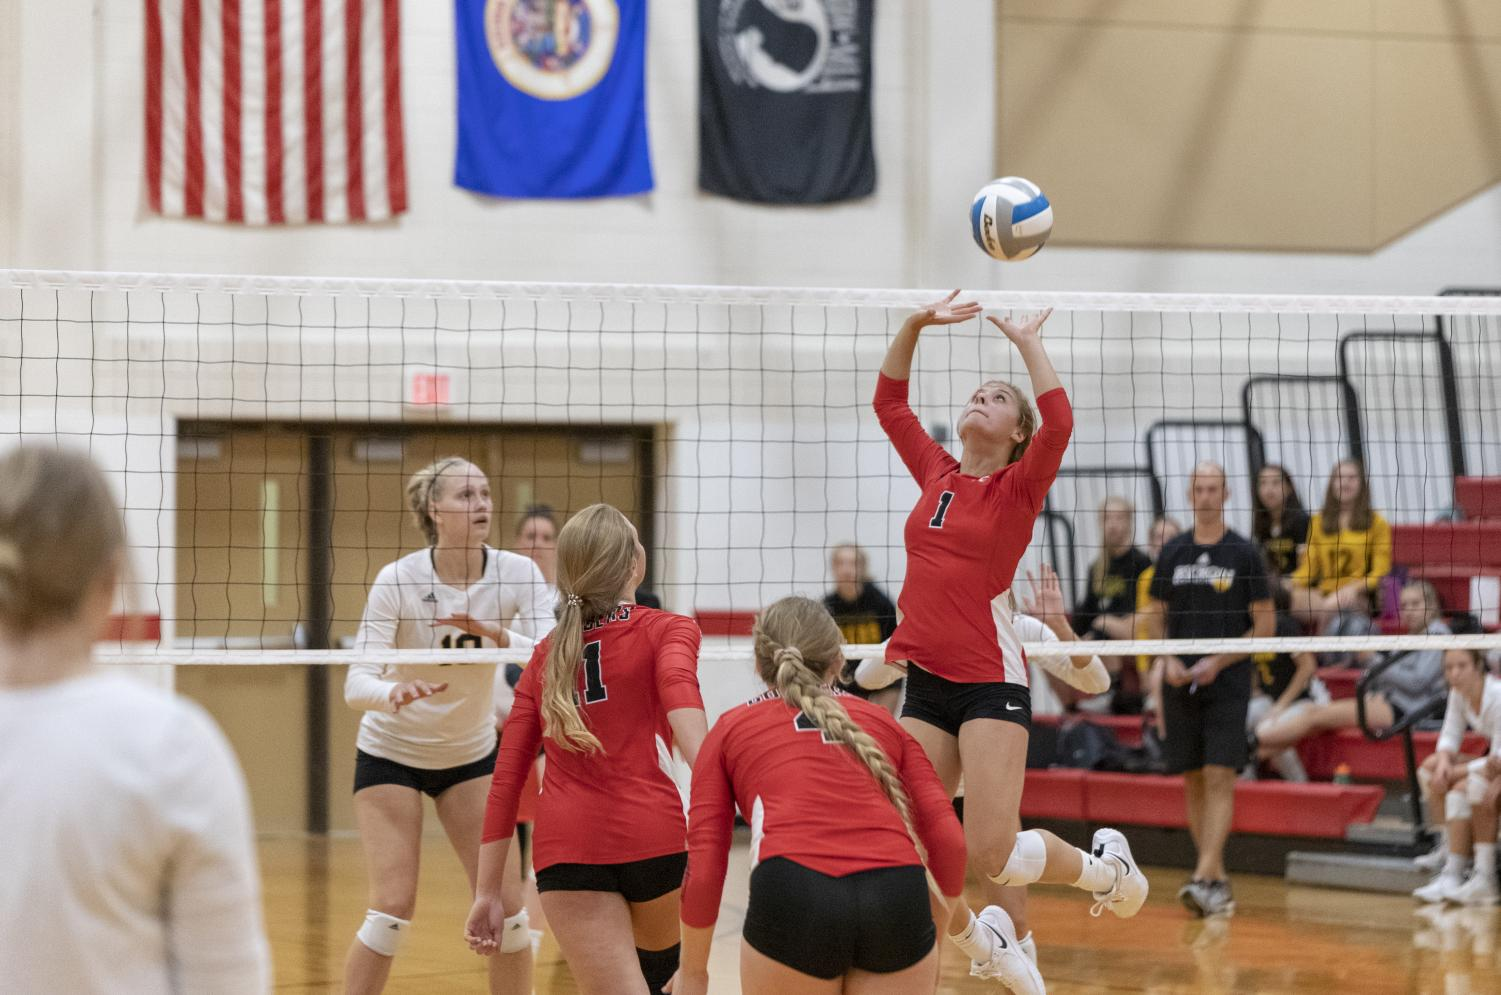 Jaci WInchell sets the ball up to Sara Twedt.